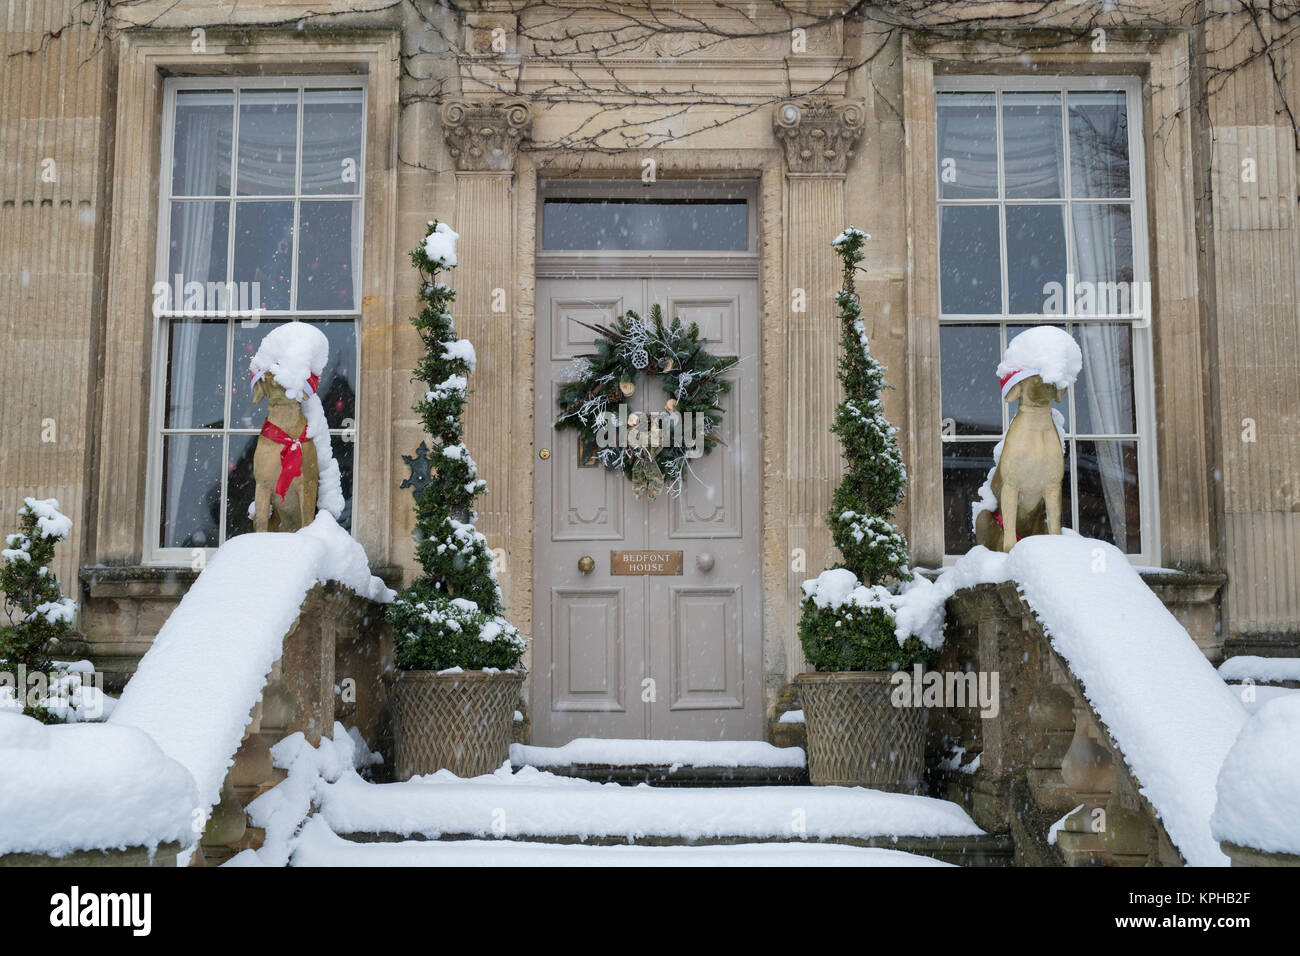 christmas dog statues and door wreath decoration in the snow outside